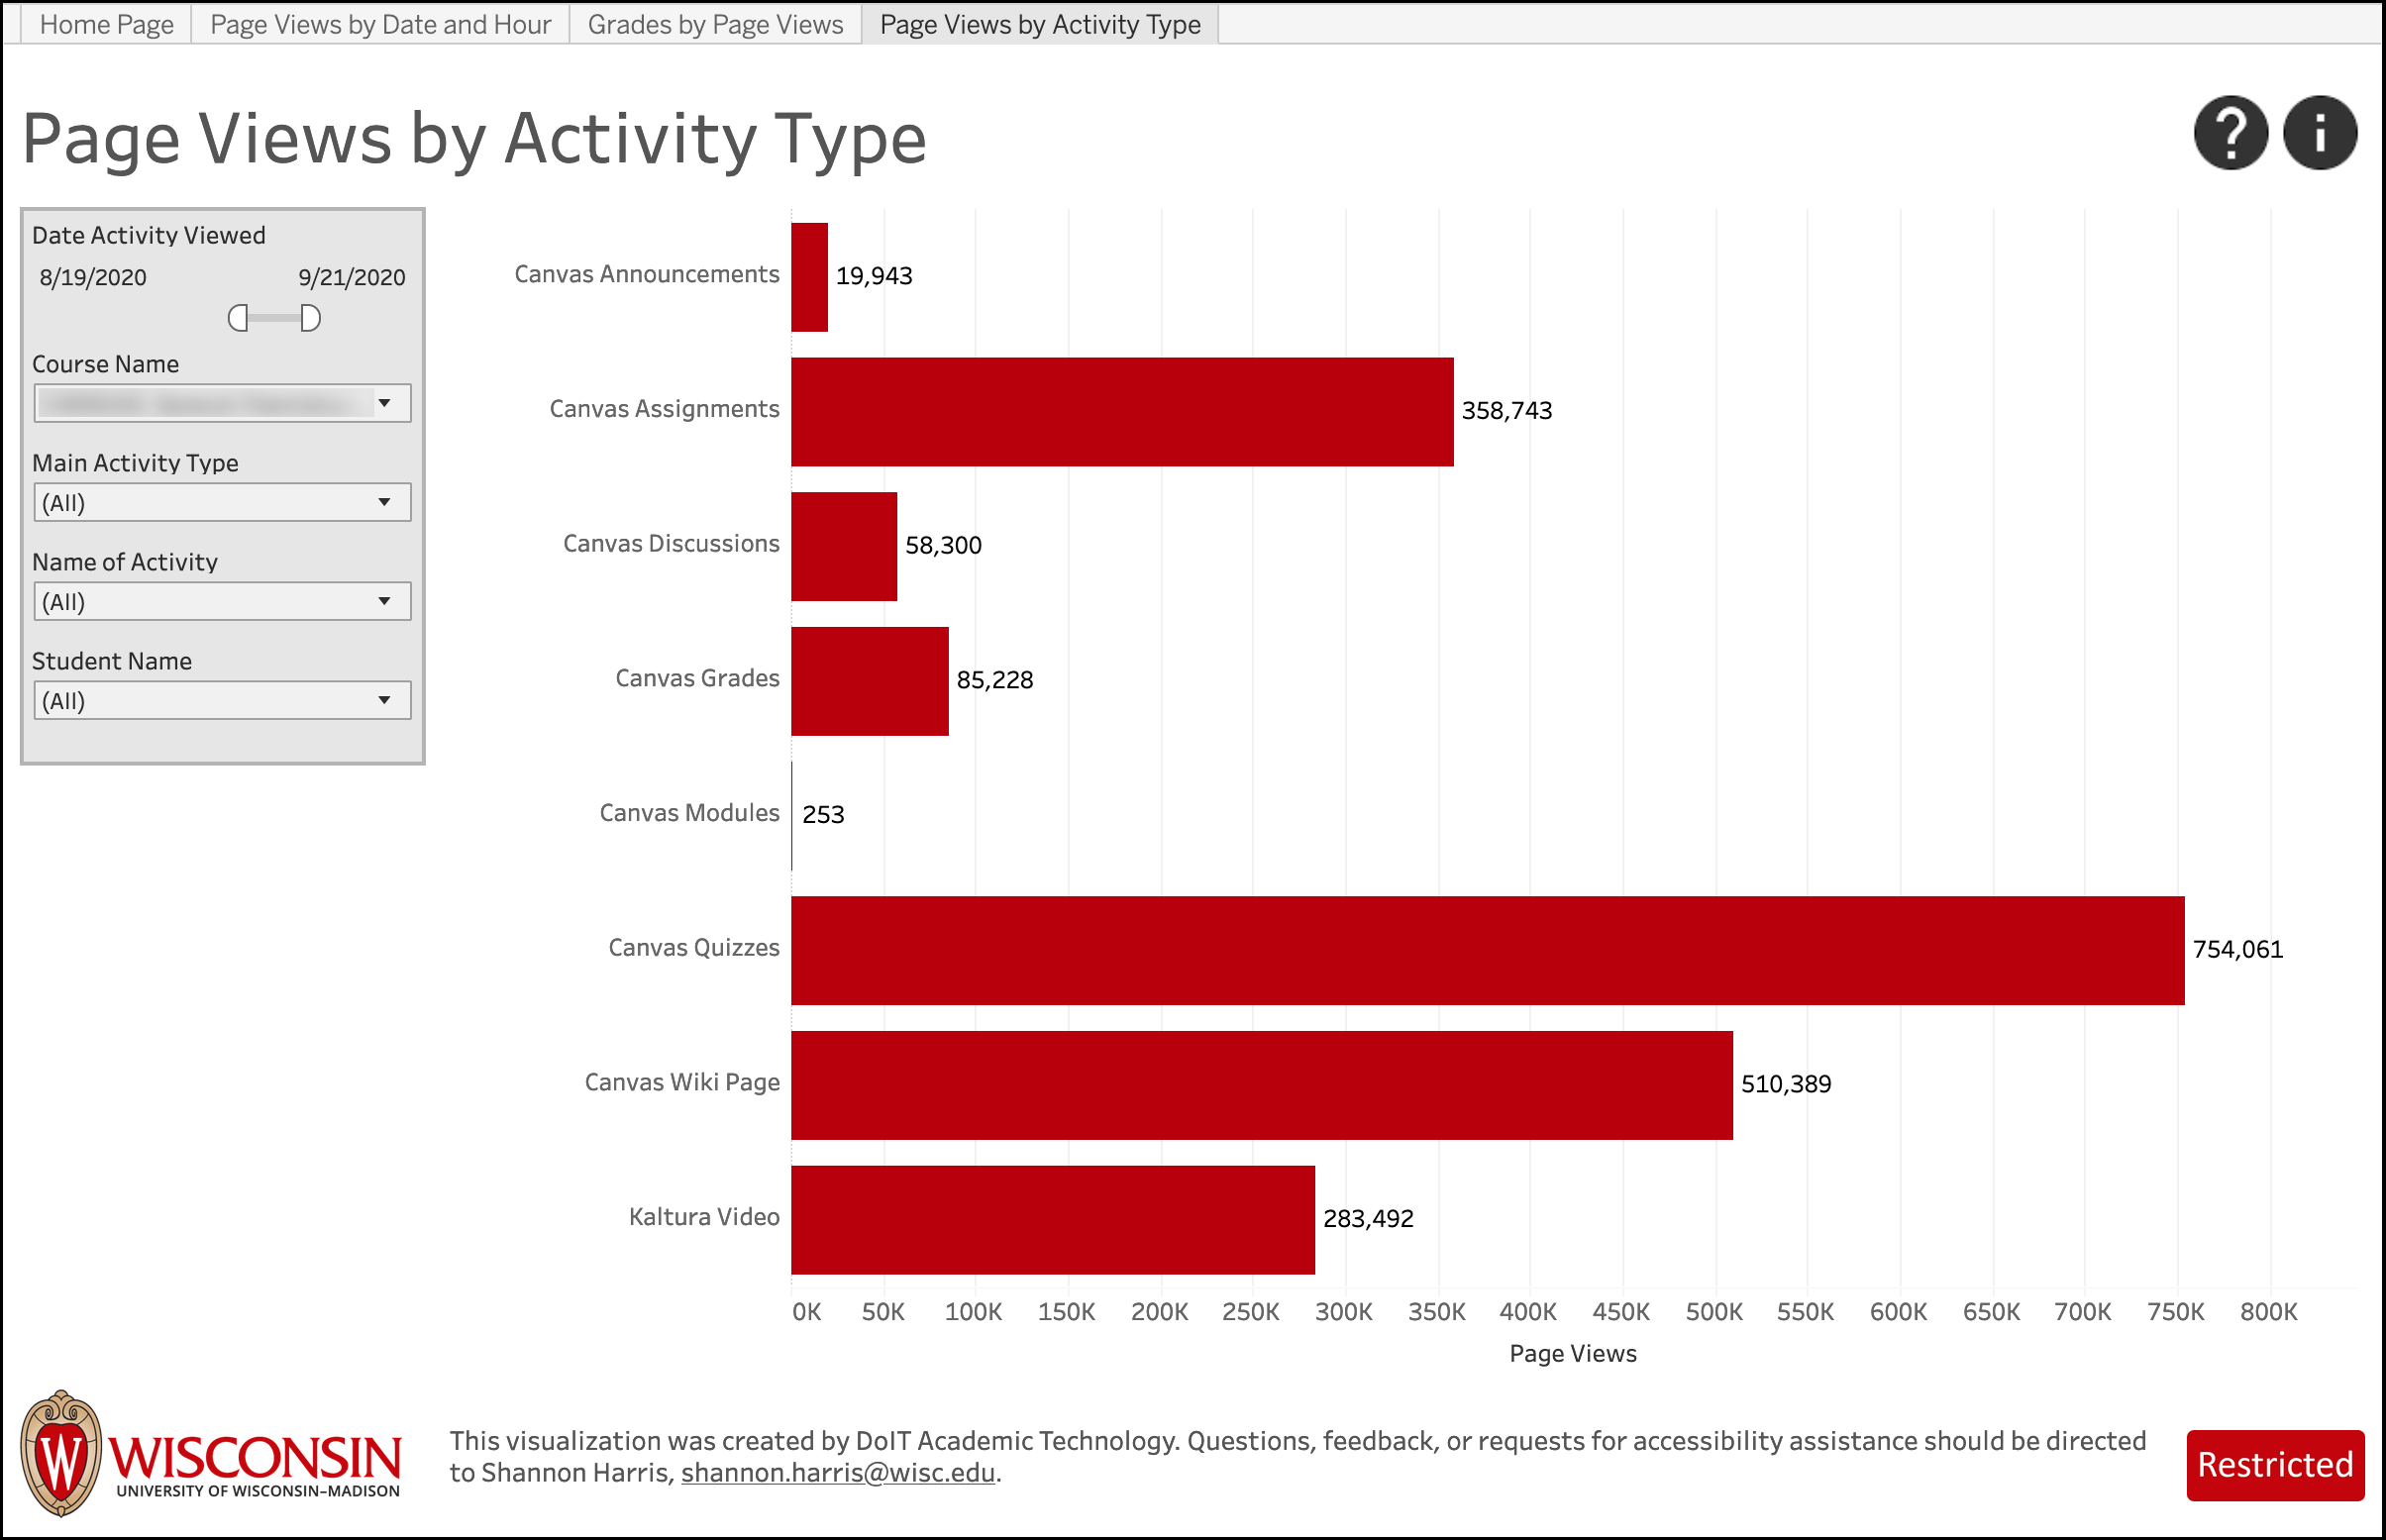 LEAD screenshot - Page Views by Activity Type